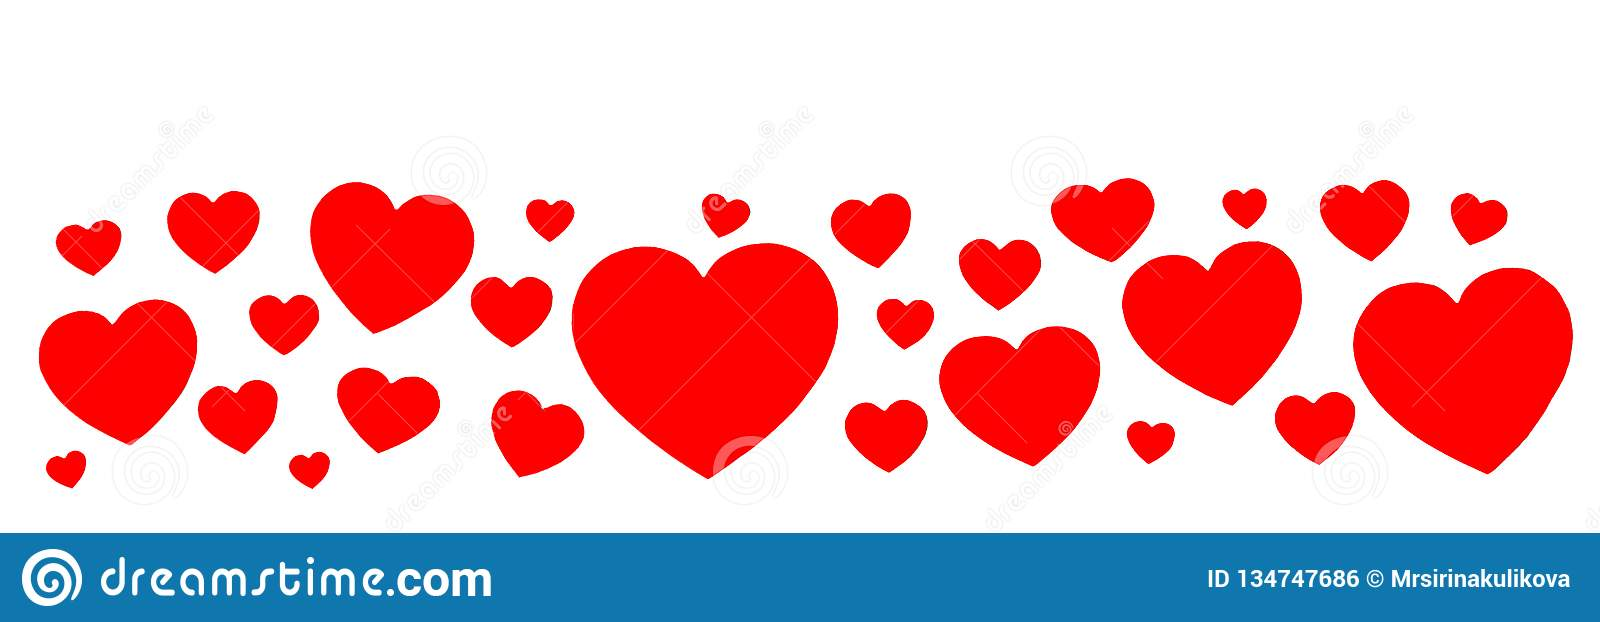 Banner from a set of red paper hearts isolated on white background